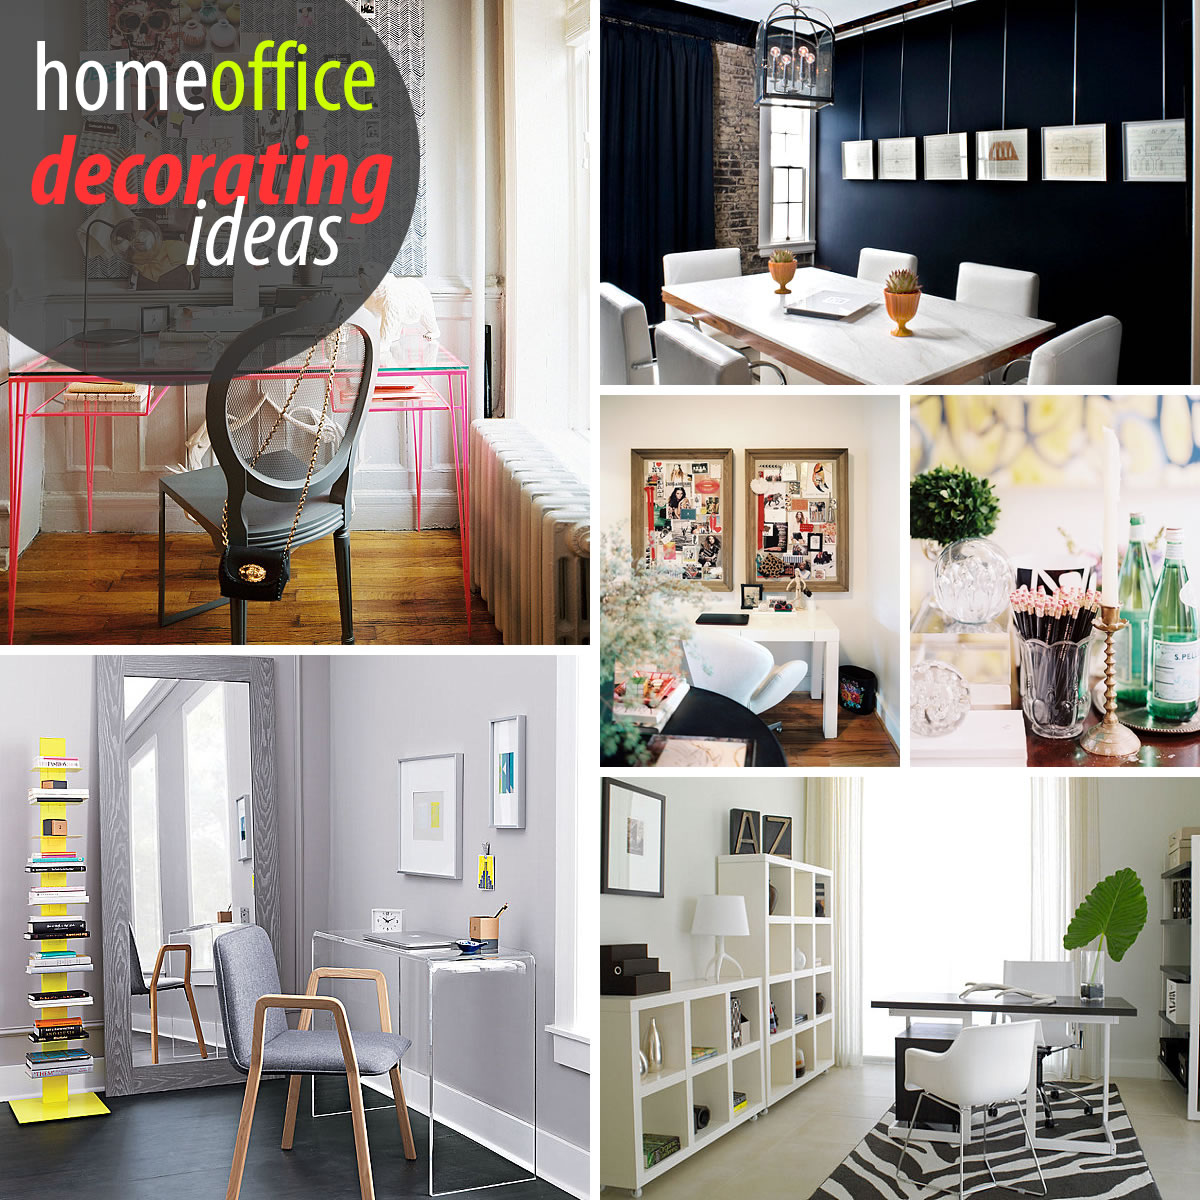 Creative home office decorating ideas for It office design ideas